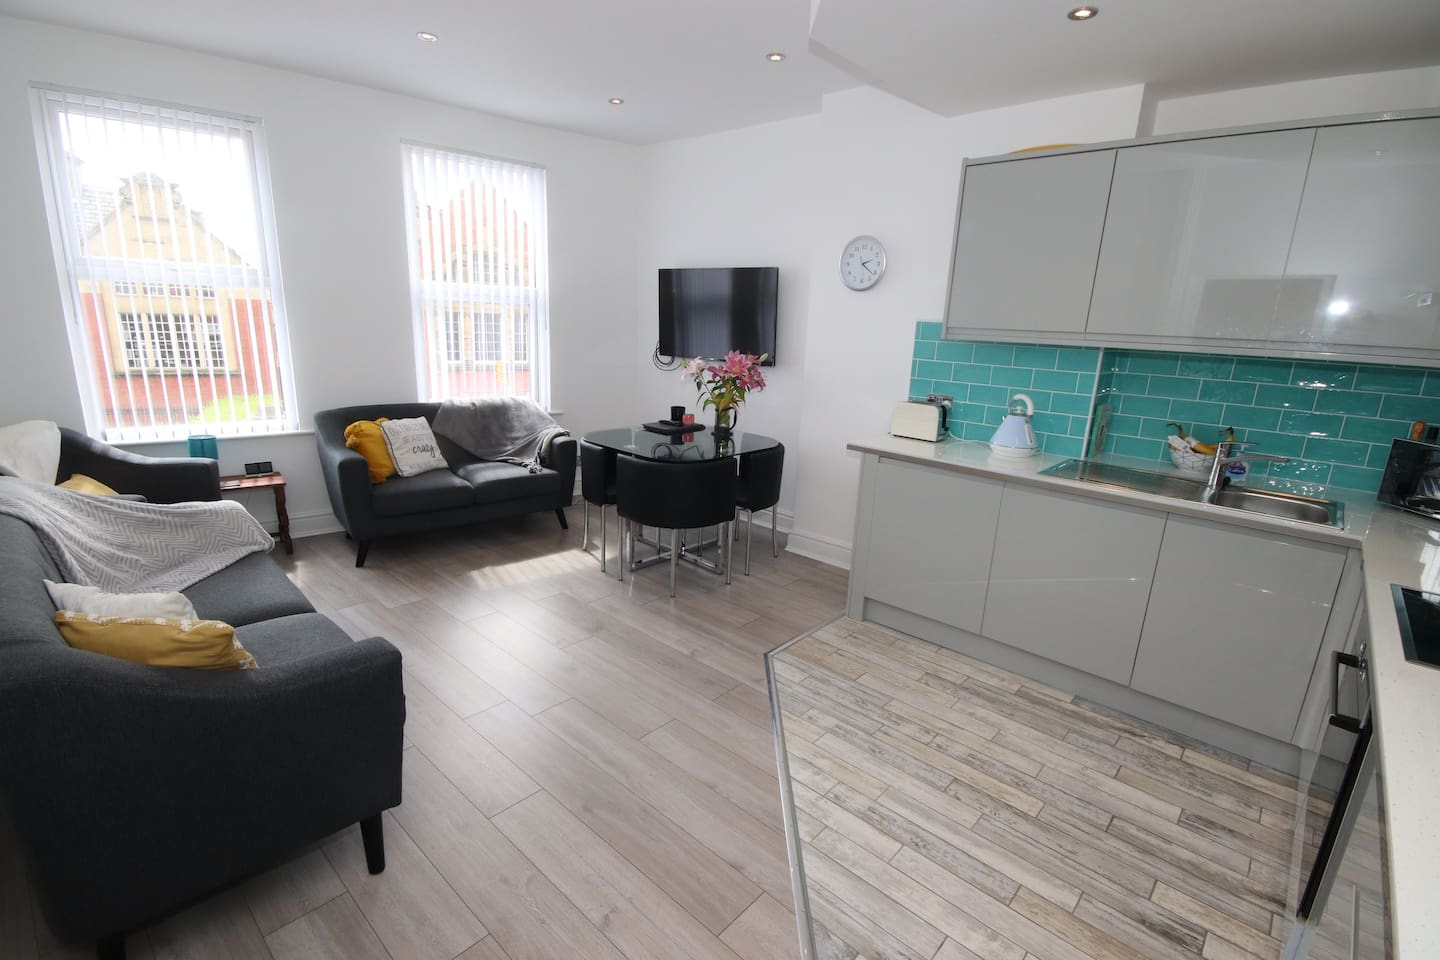 """Open-plan kitchen-livingroom, overlooking street, great view of library and council listed buildings, 50"""" flatscreen smart TV. Built-in freezer on left, fridge next to it."""